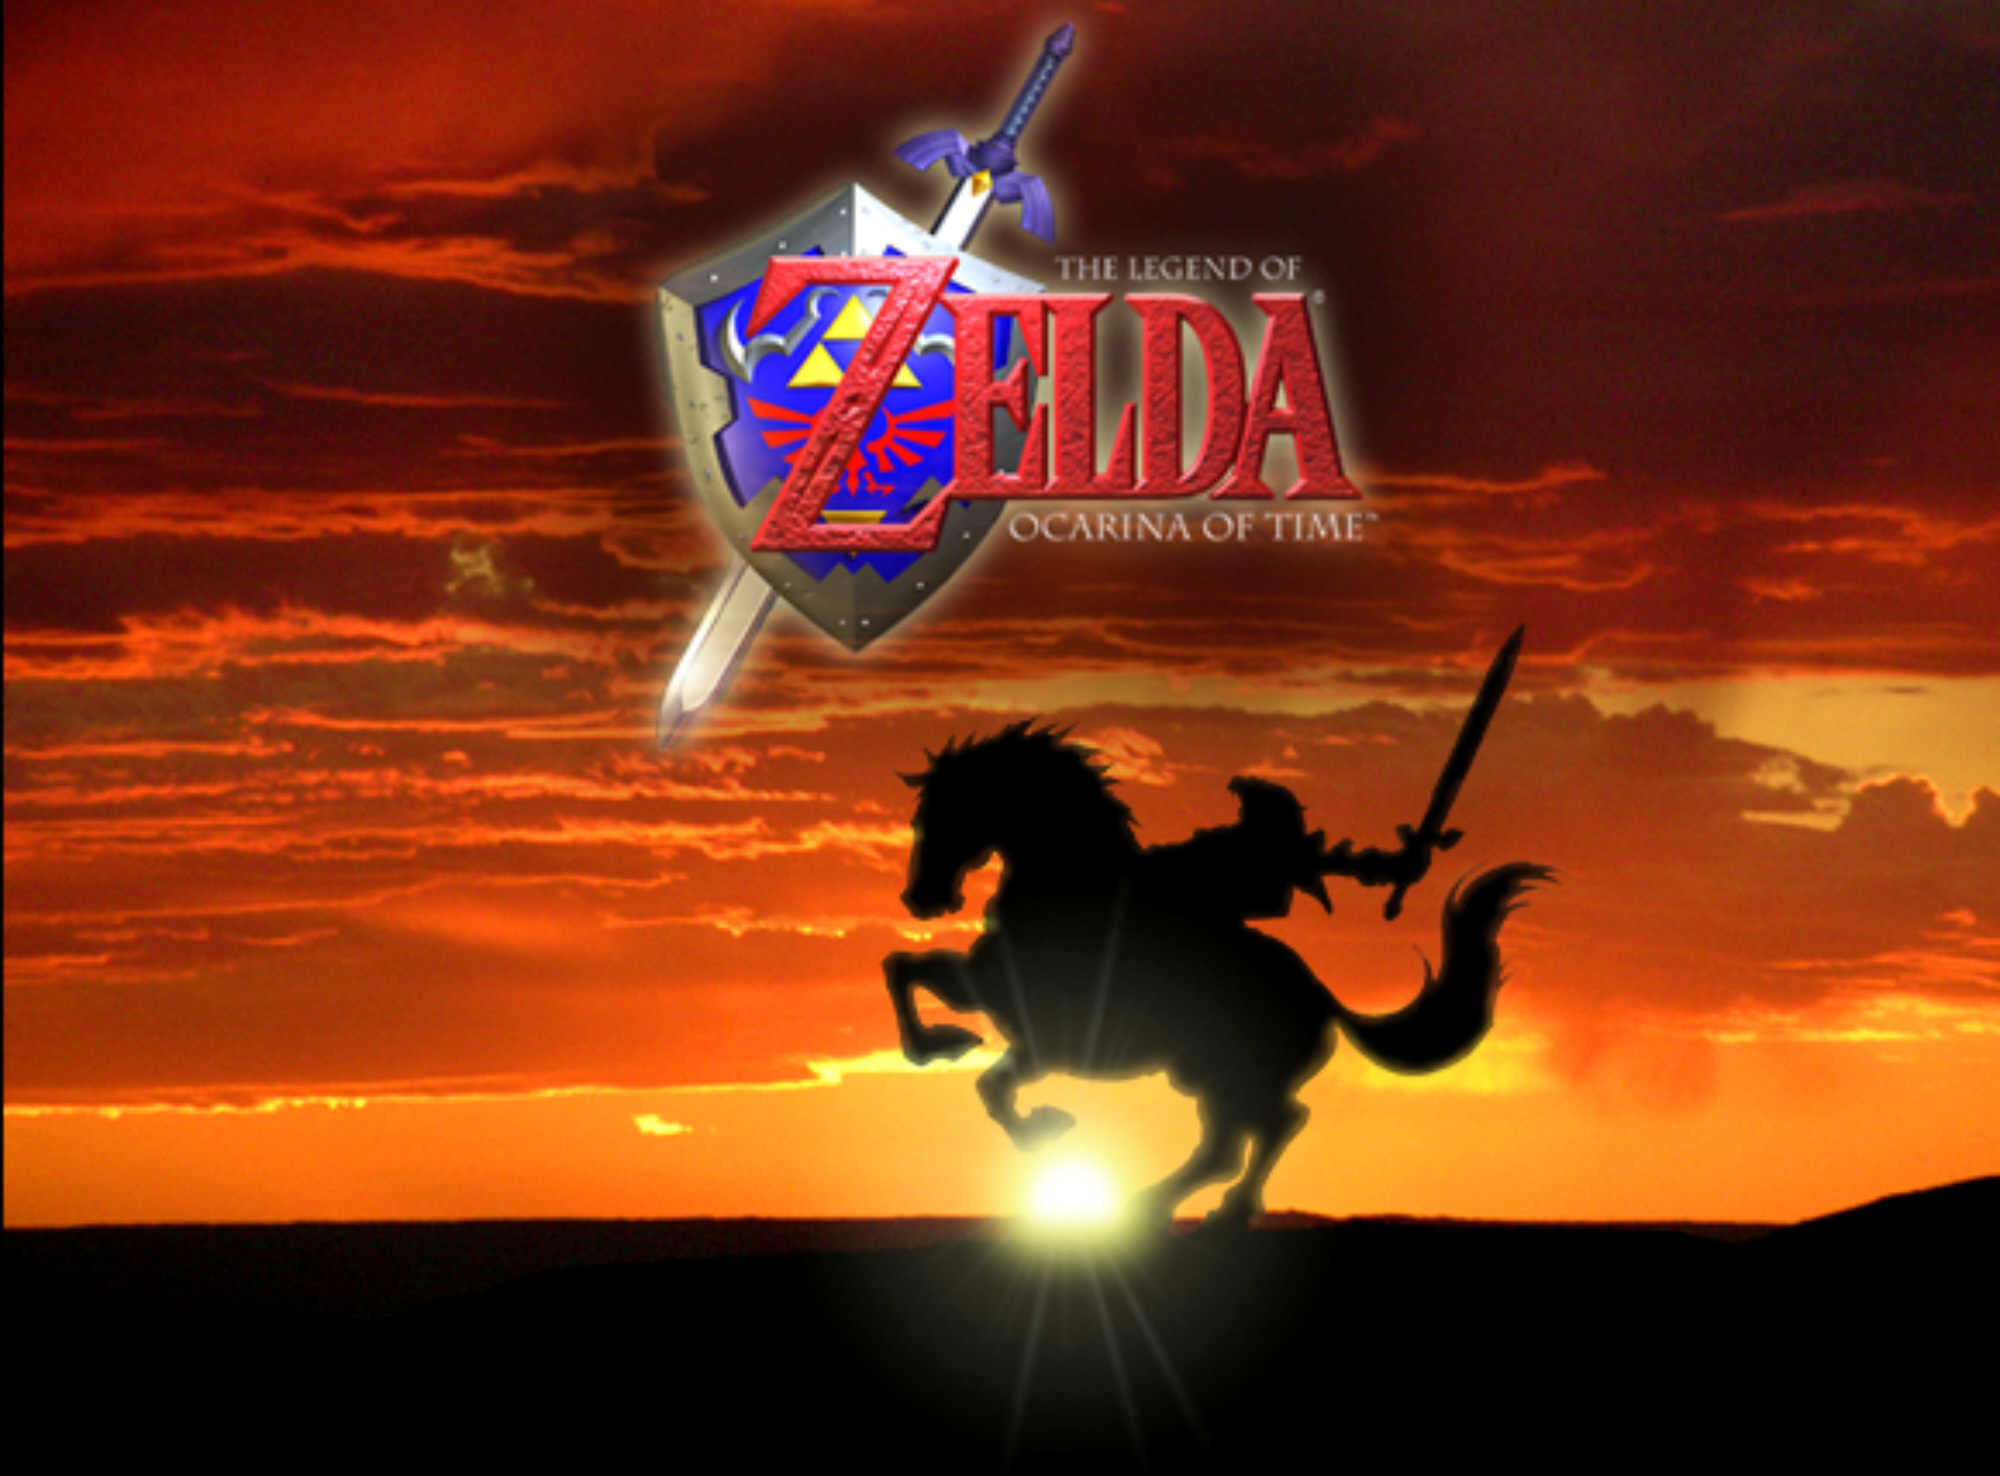 legend of zelda ocarina of time d wallpaper 2000x1476